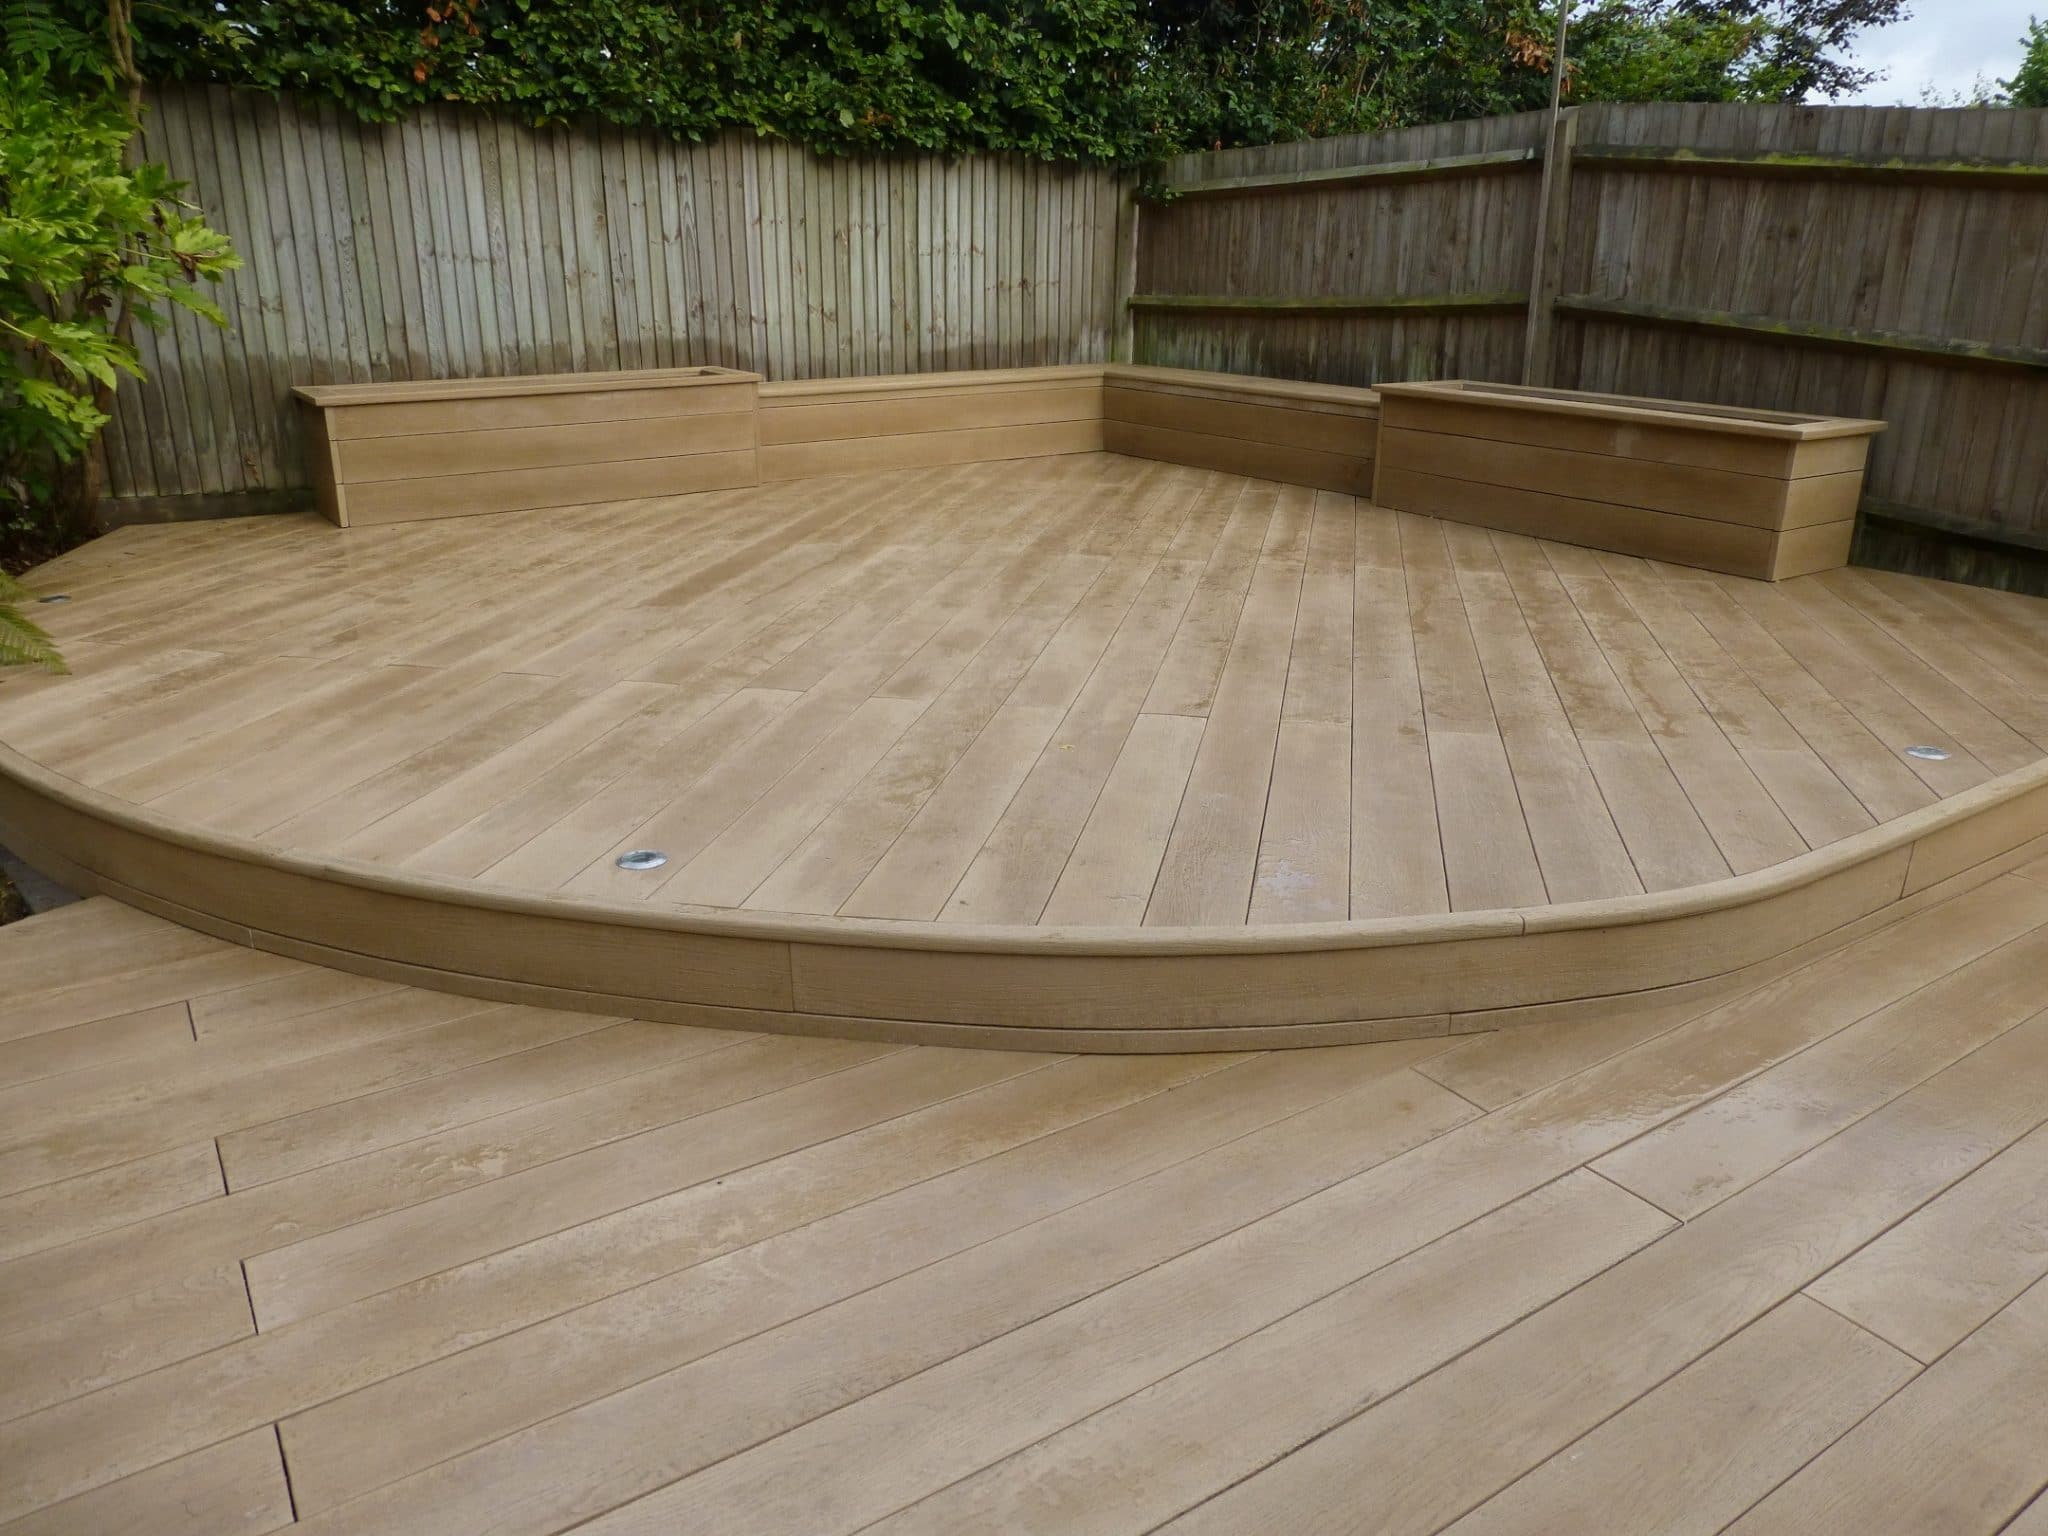 Millboard bullnose flexible step edge exterior solutions